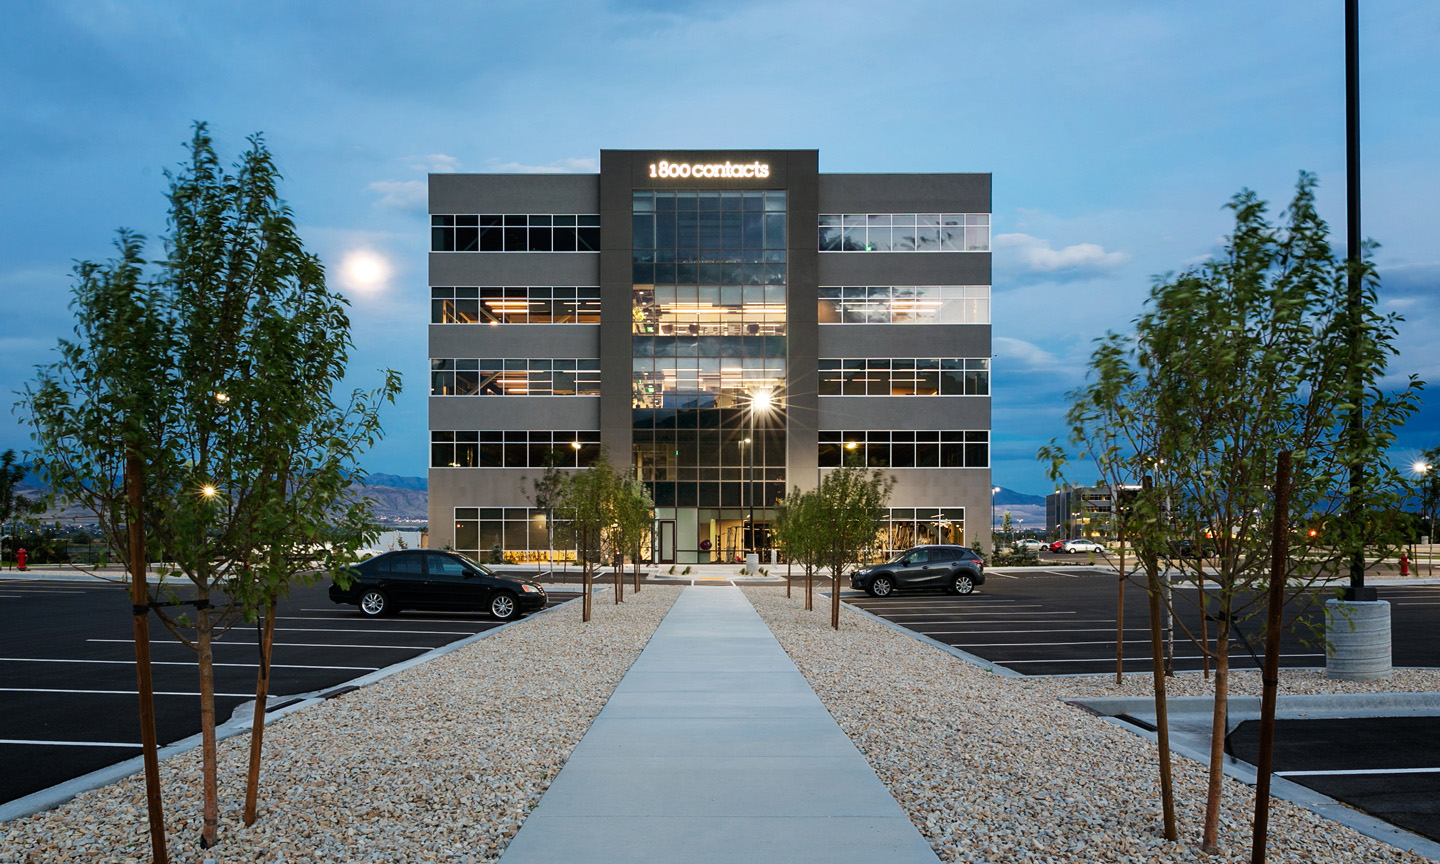 1-800-Contacts office building